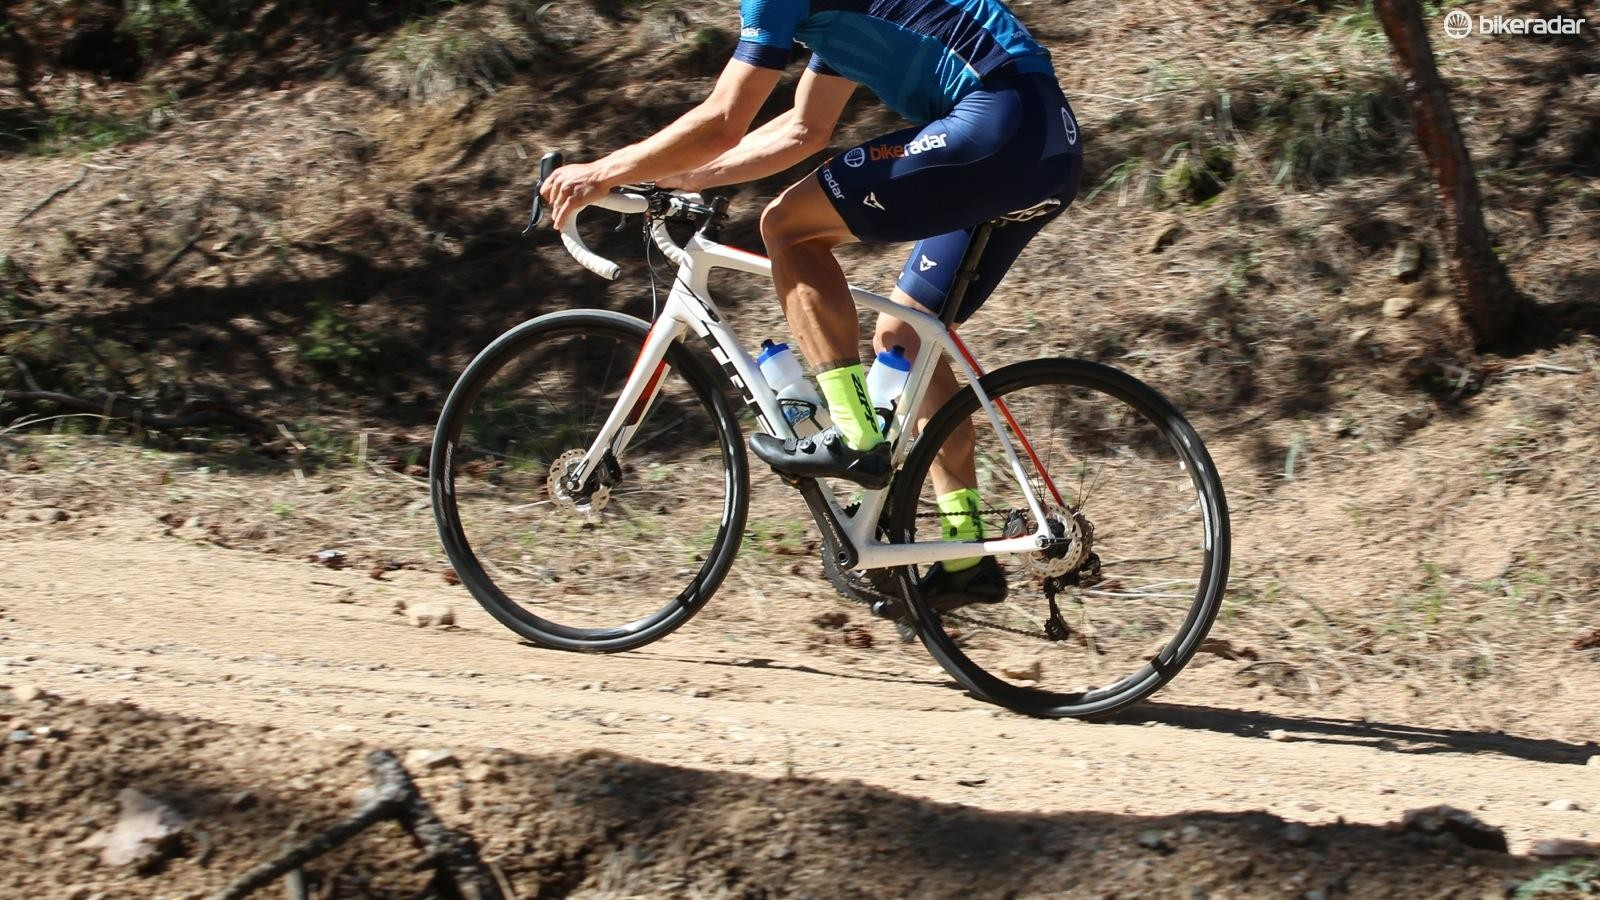 The Domane is an endurance road bike that is plenty fast on the pavement, but at home on rougher surfaces too